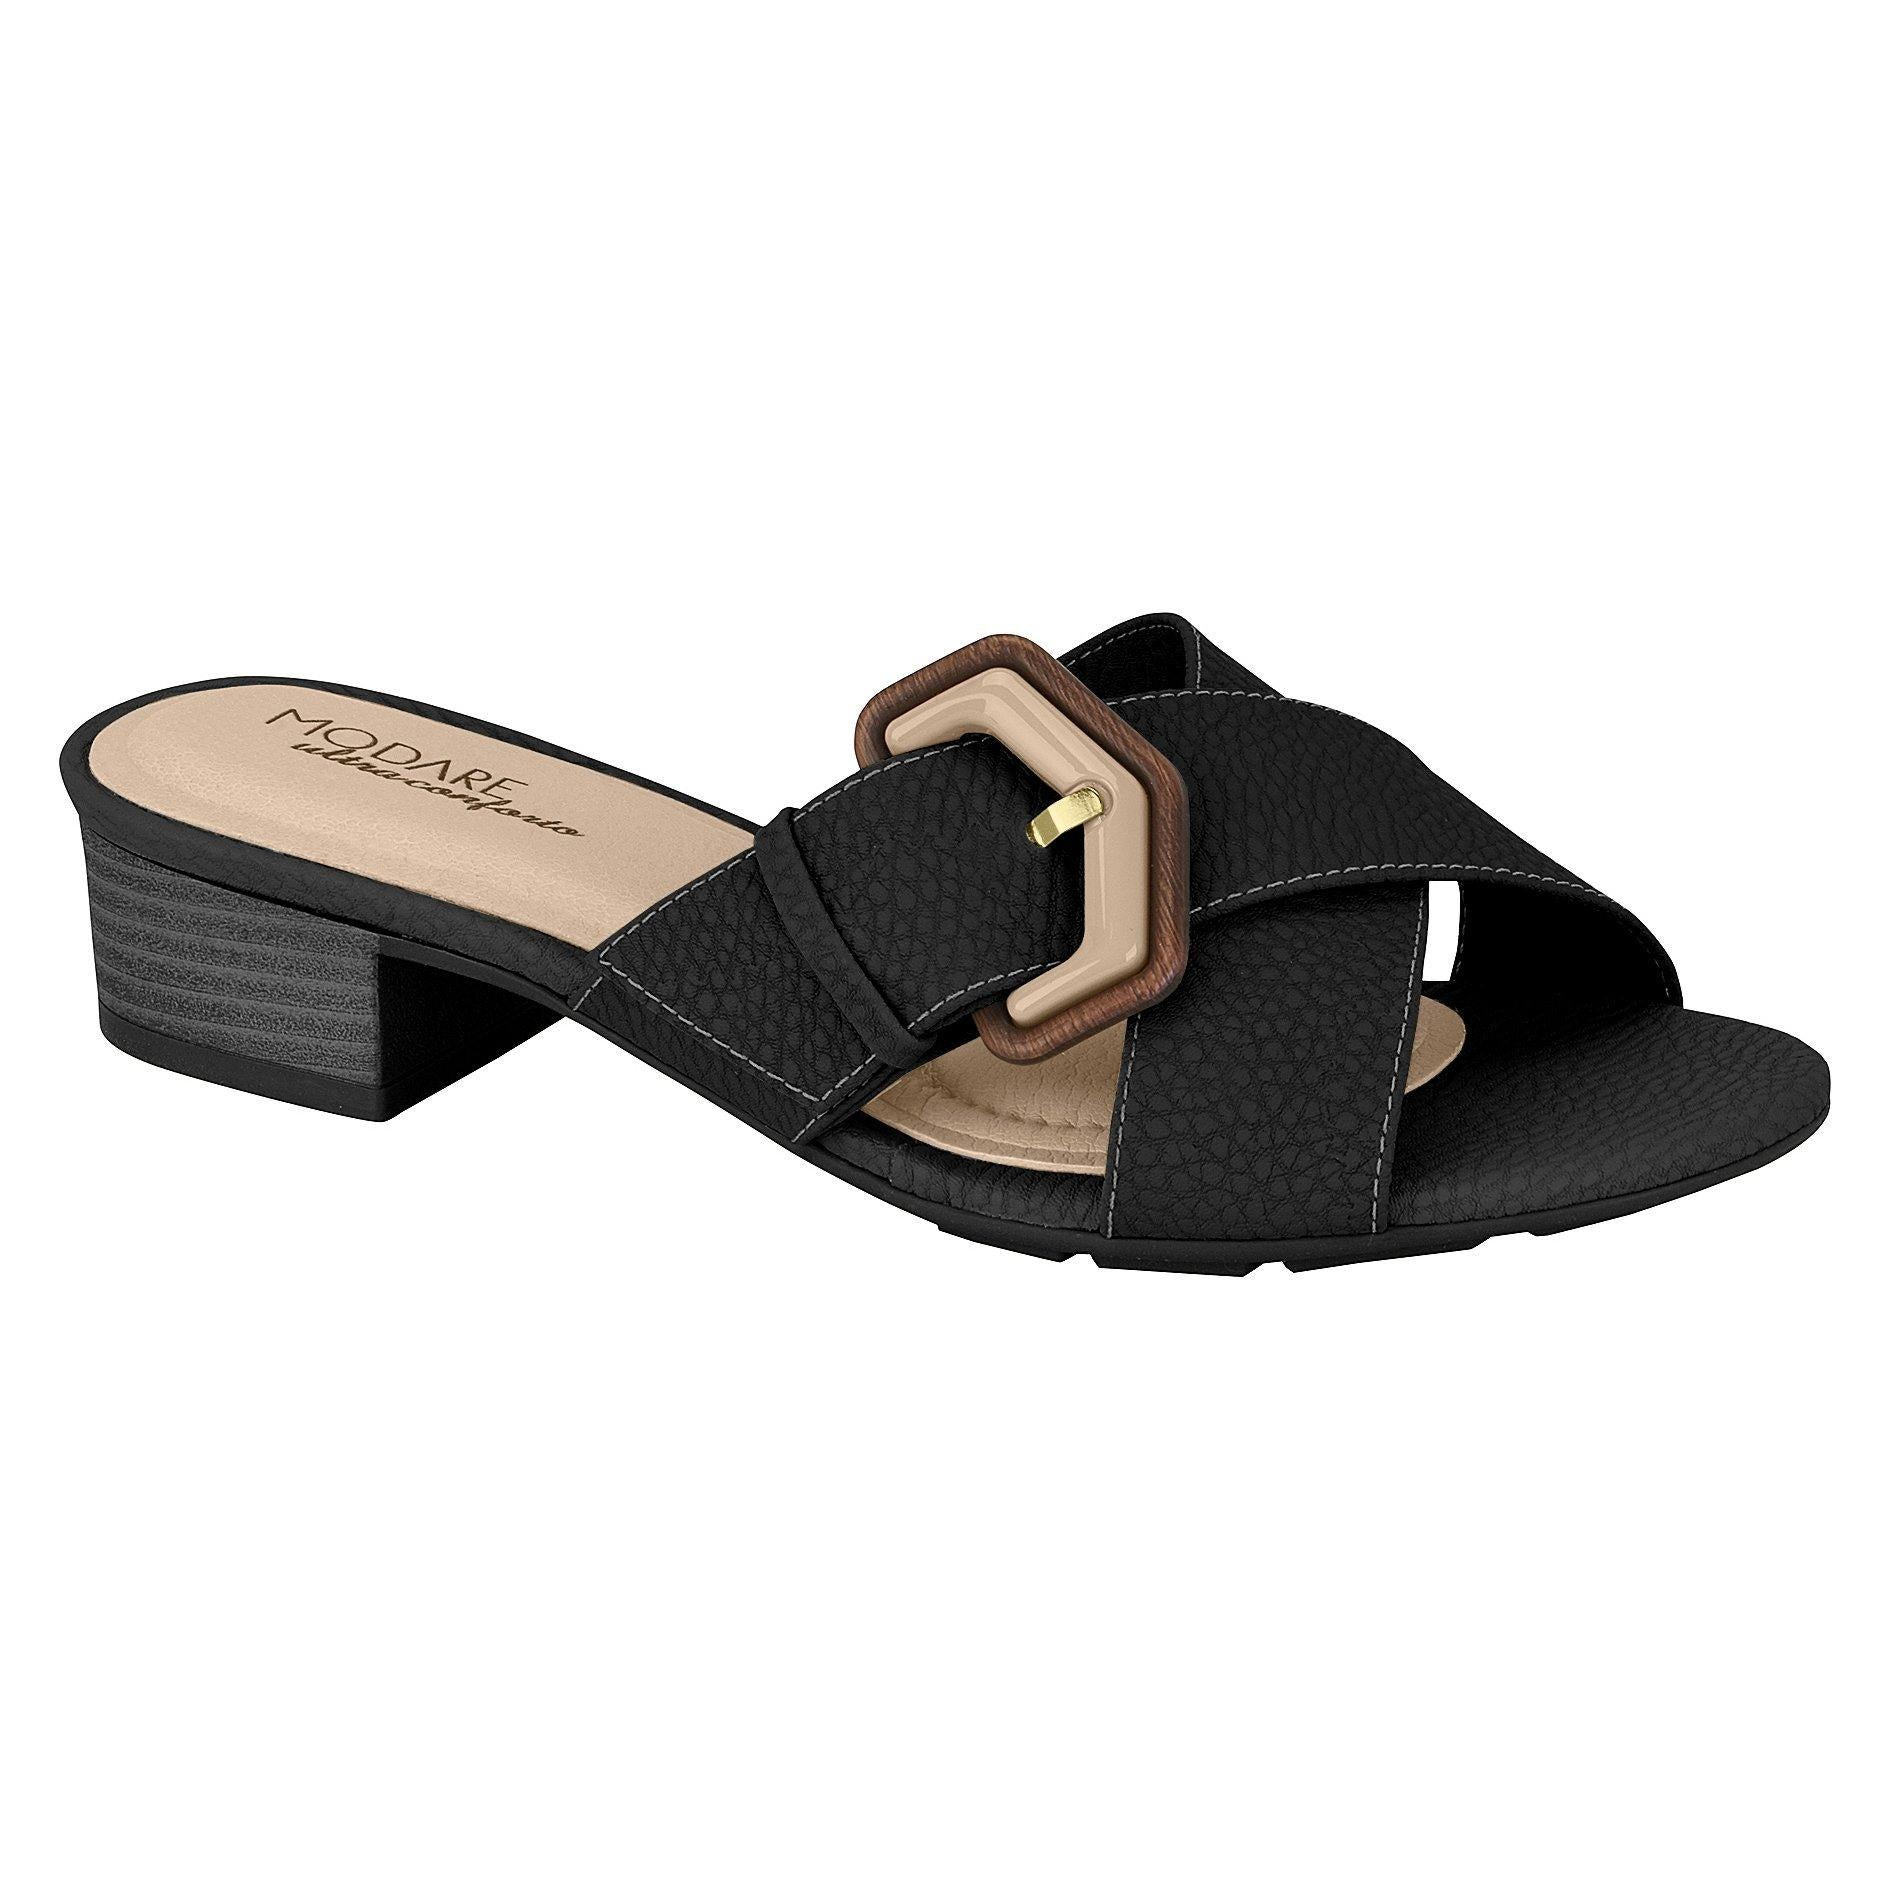 Modare 7136-110 Low Heel Slip-on Sandal in Black